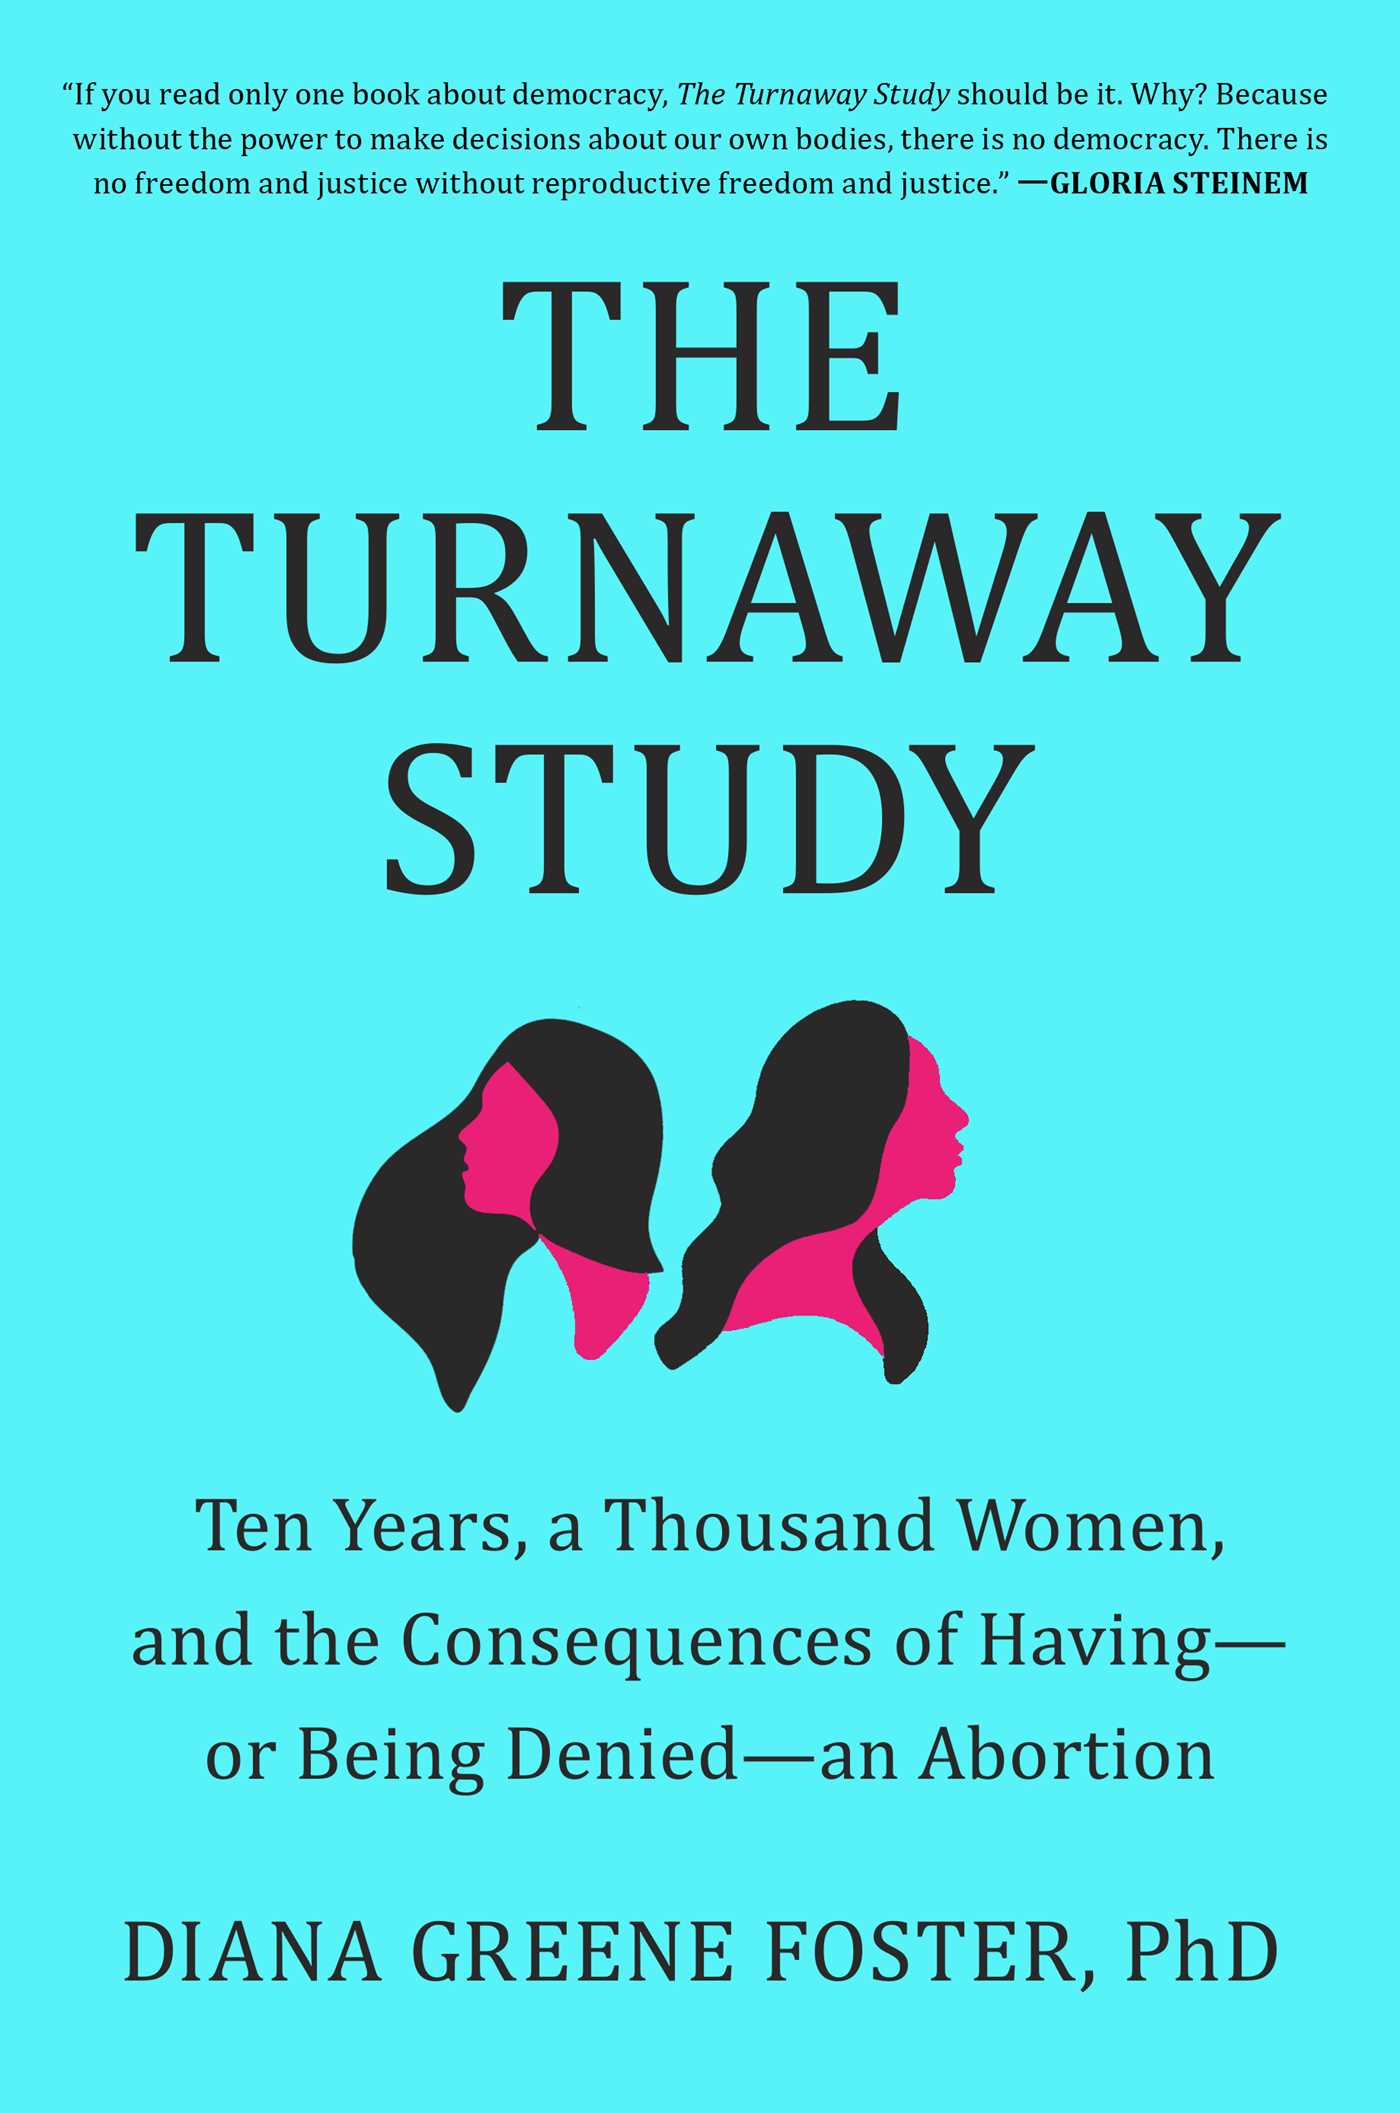 The Turnaway Study: Ten Years, a Thousand Women, and the Consequences of Having—Or Being Denied—an Abortion